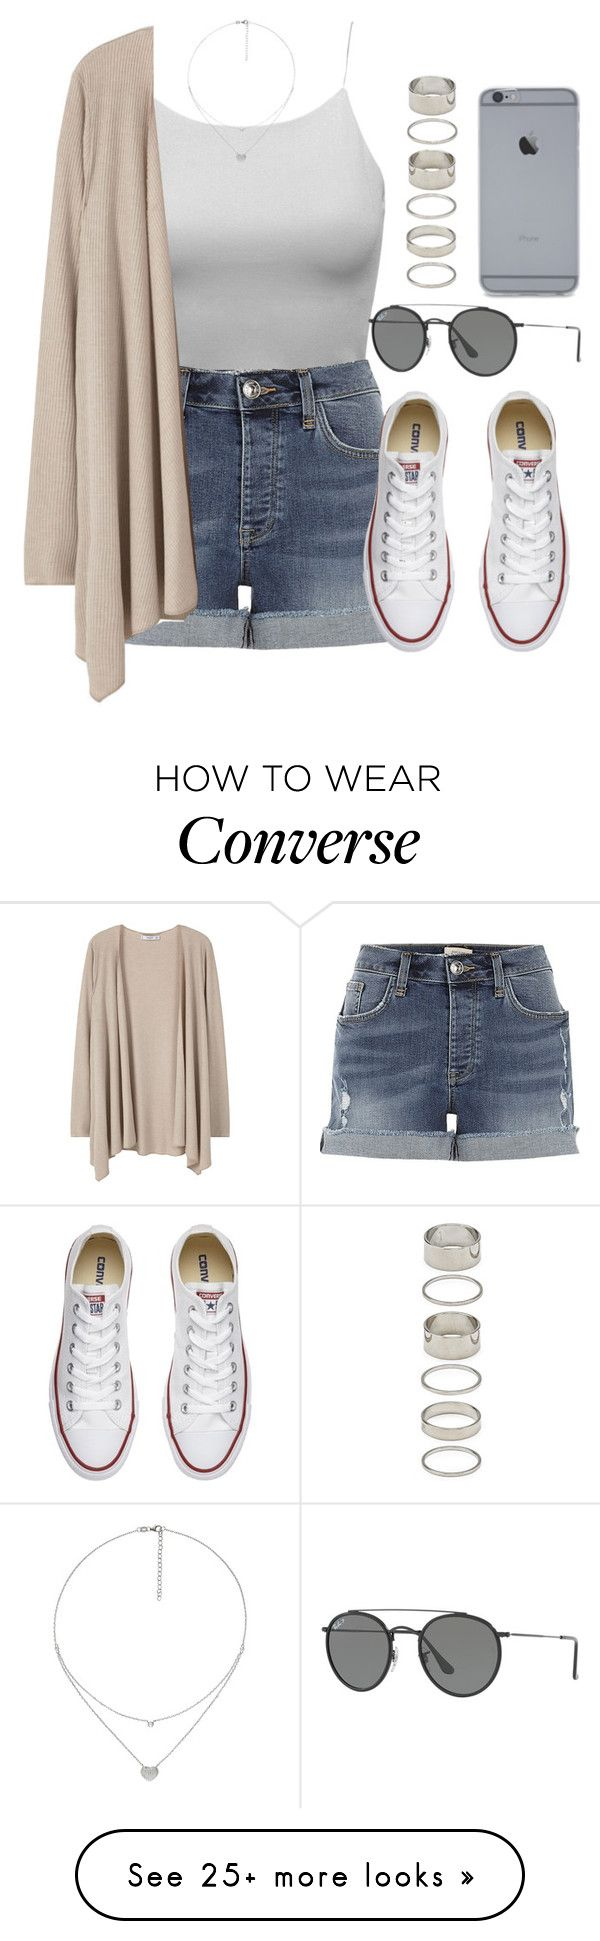 """""""Sin título #12084"""" by vany-alvarado on Polyvore featuring River Island, MANGO, Converse, Ray-Ban, Forever 21 and Folli Follie"""